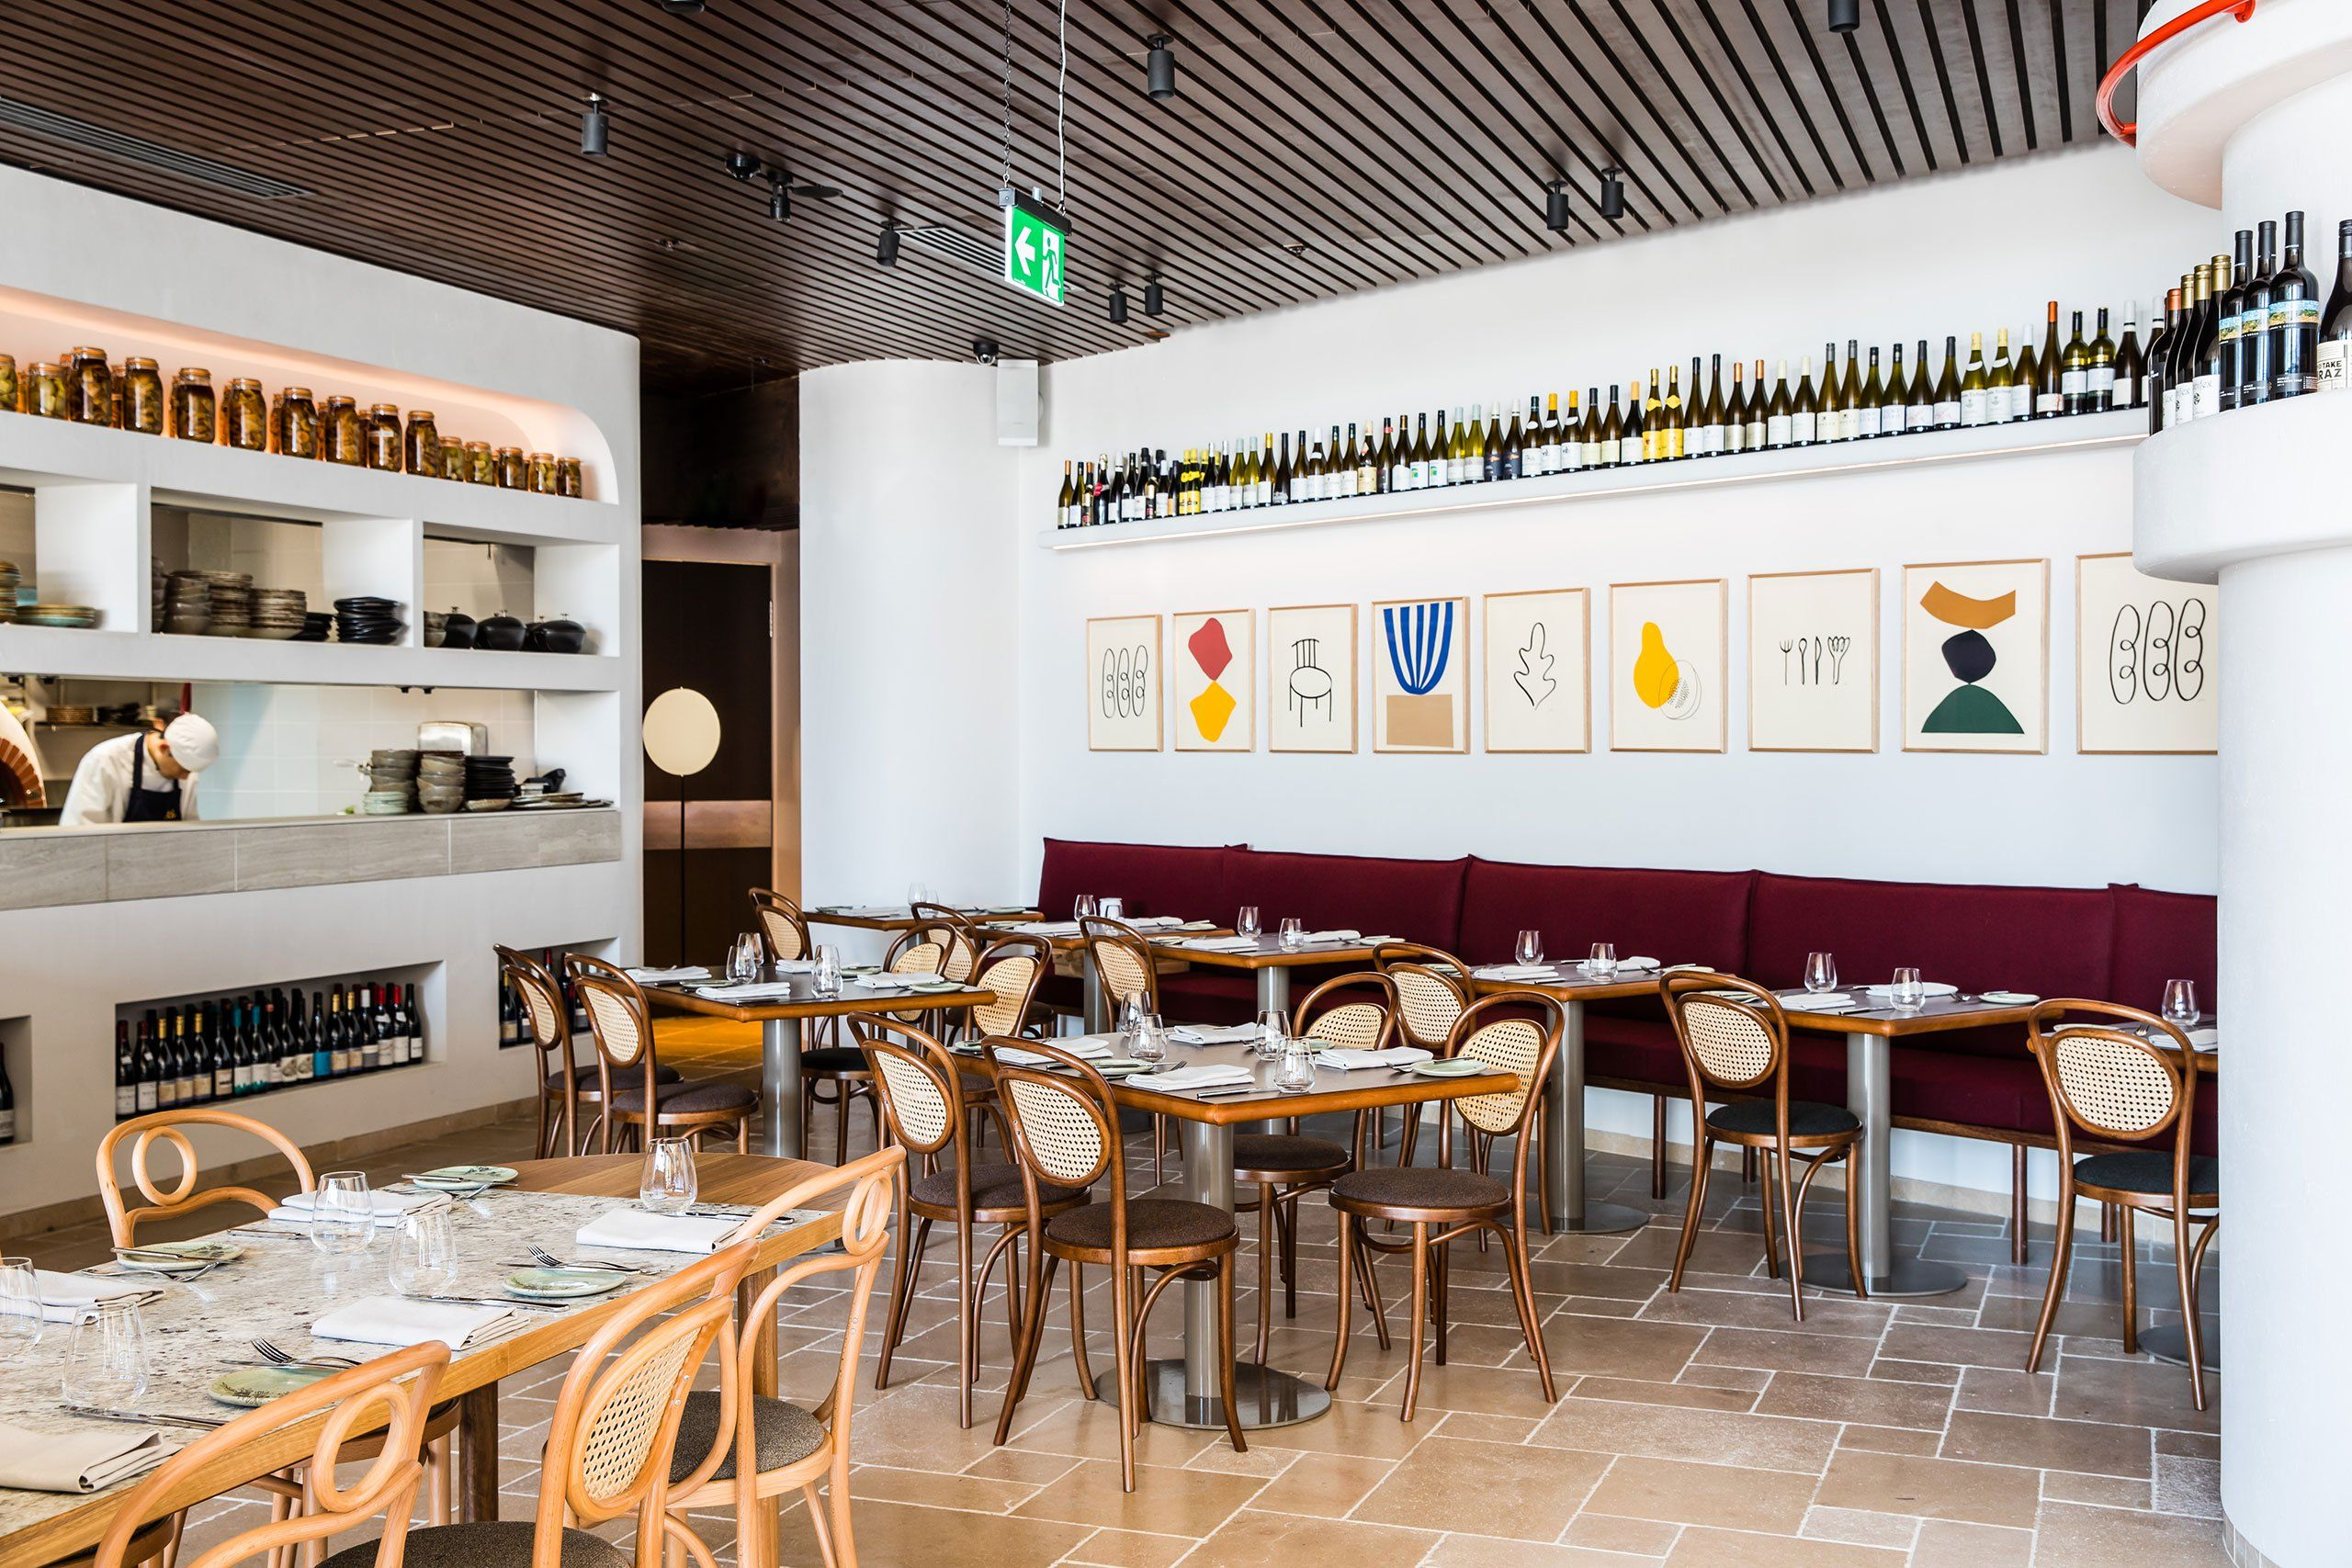 Traditional Provence Meets Contemporary Australia In Sydneys T Restaurant -